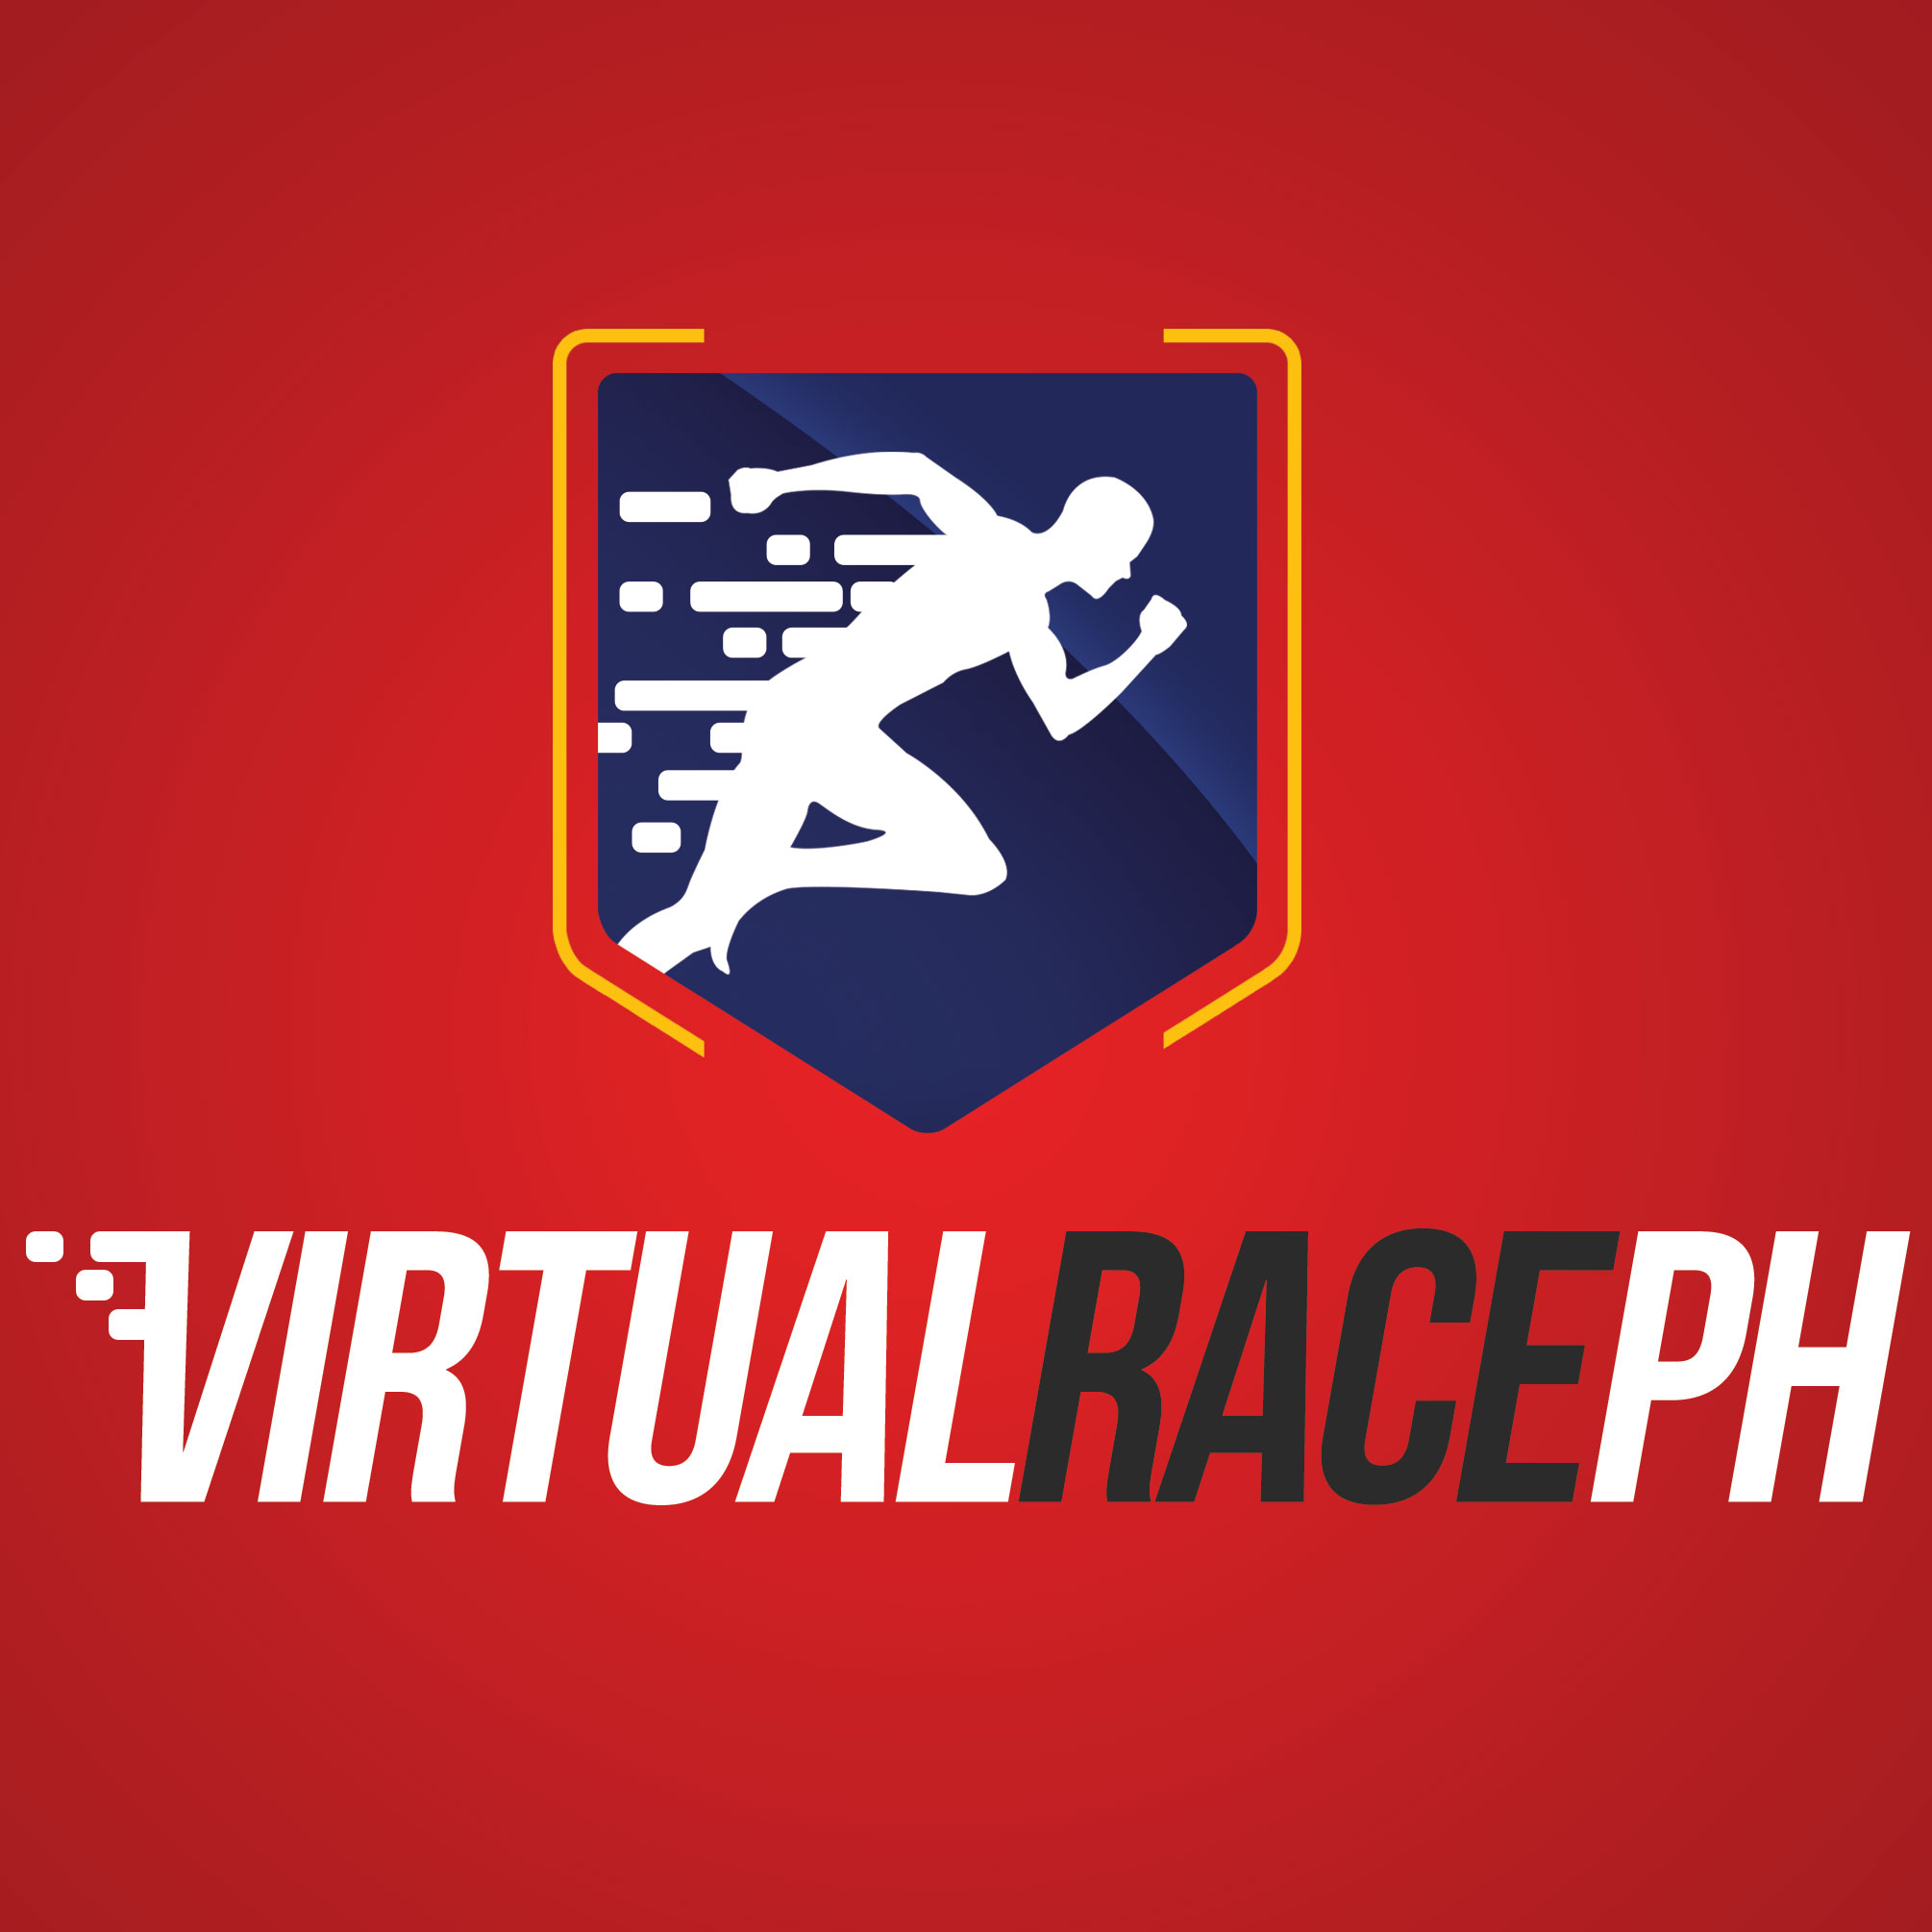 VirtualRacePH launched 21 Day Challenge: Run for Charity